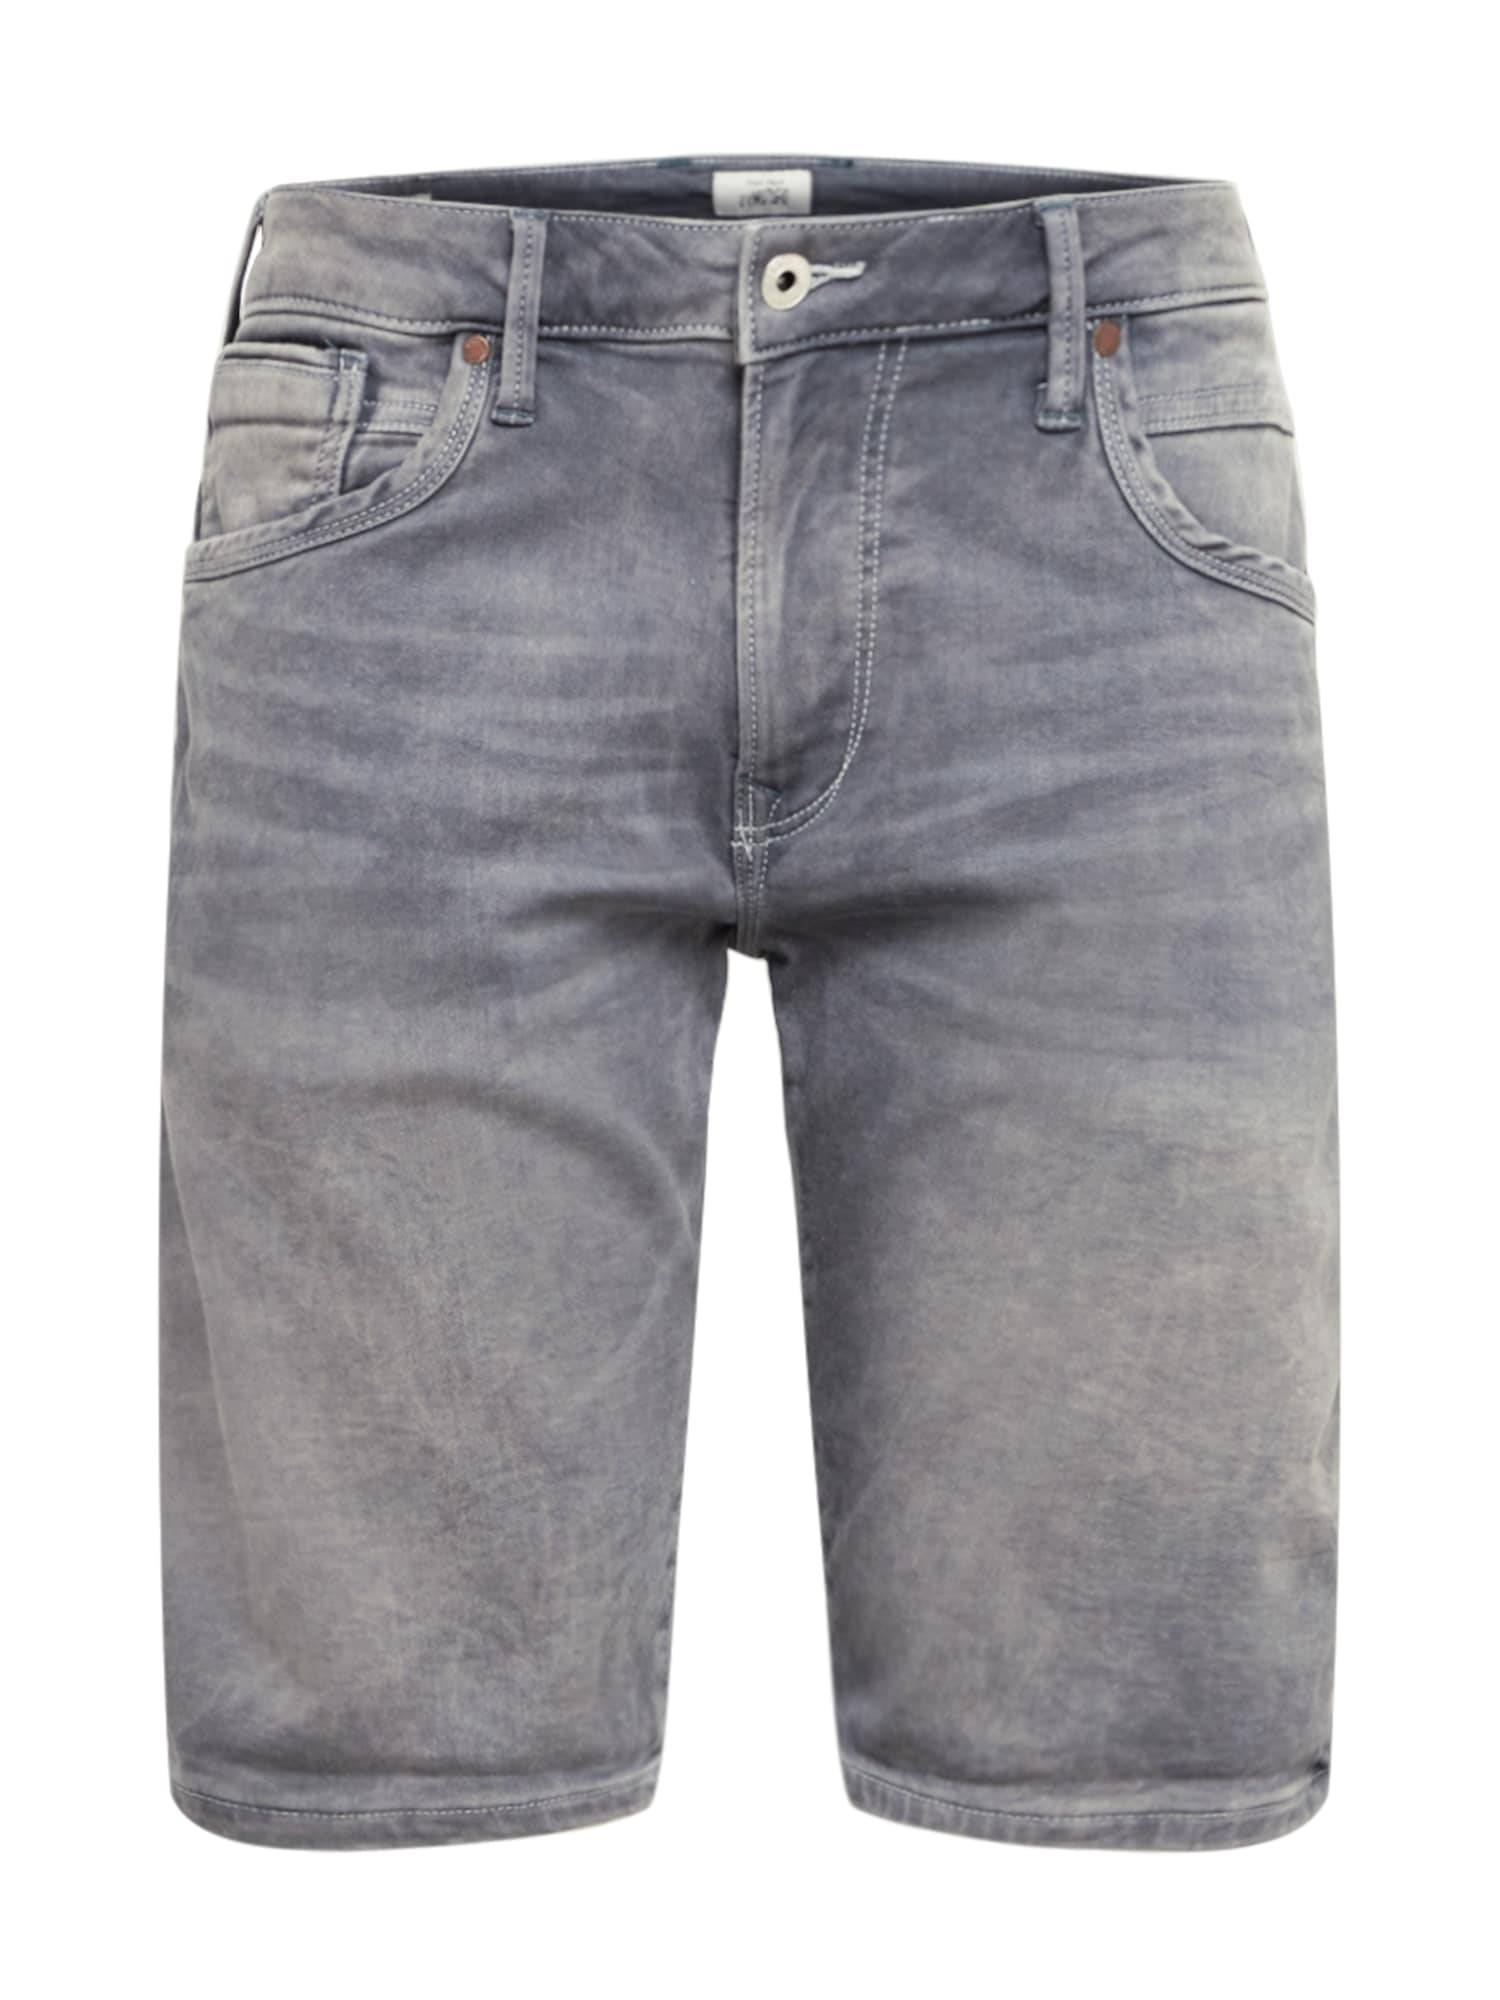 Pepe Jeans Jean 'STANLEY'  - Bleu - Taille: 31 - male